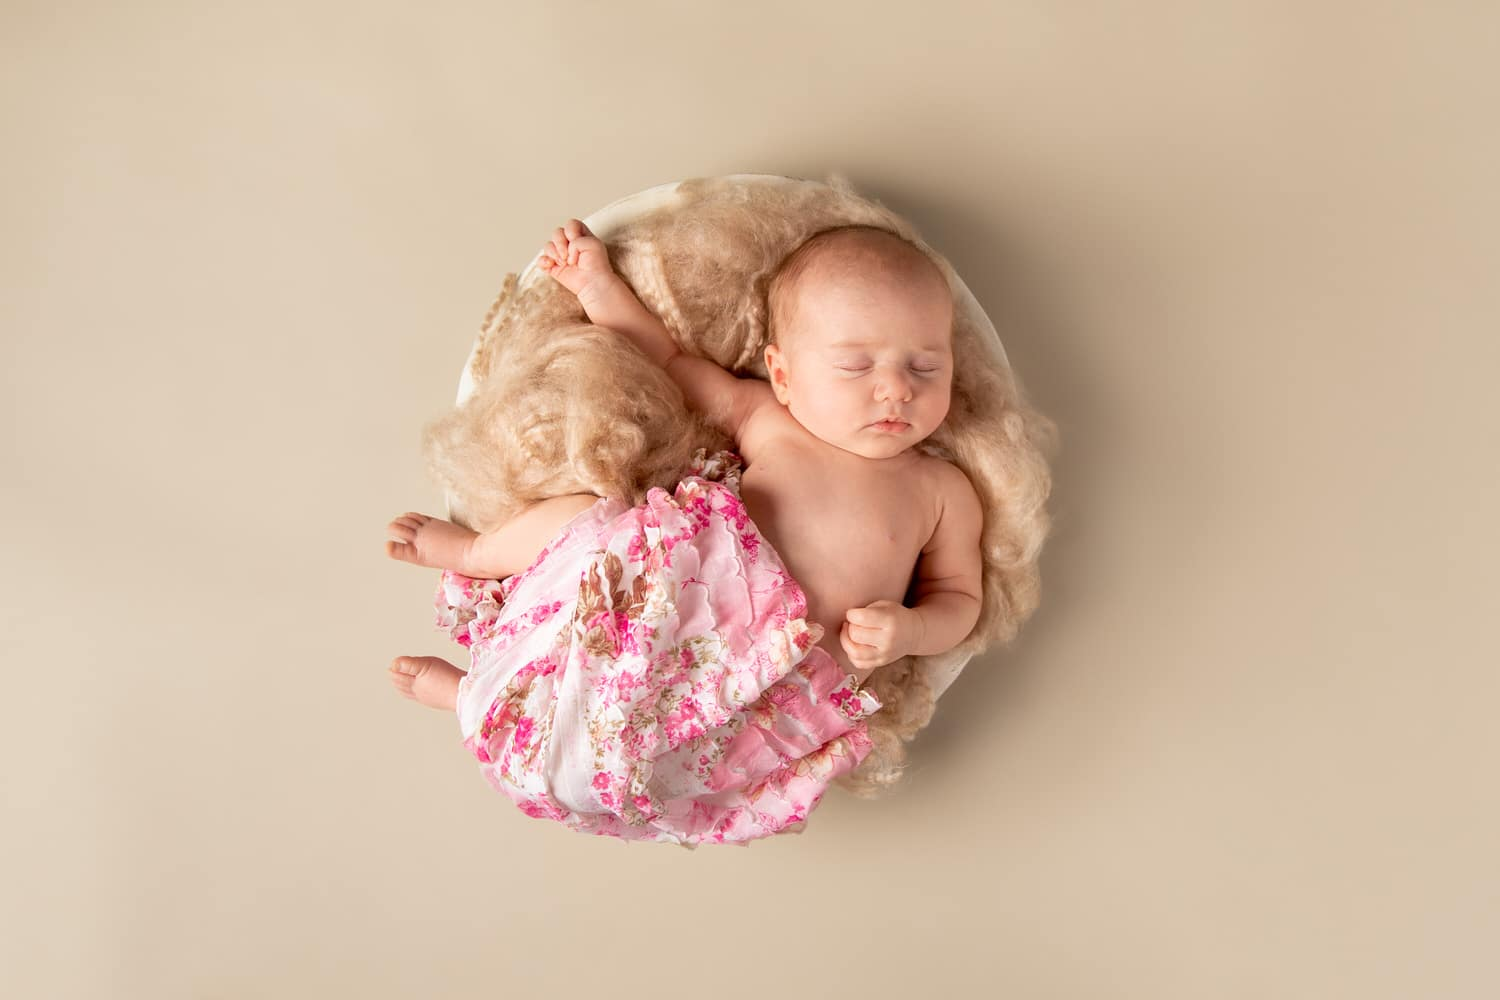 a professional baby photography shoot in Calgary located inside a studio